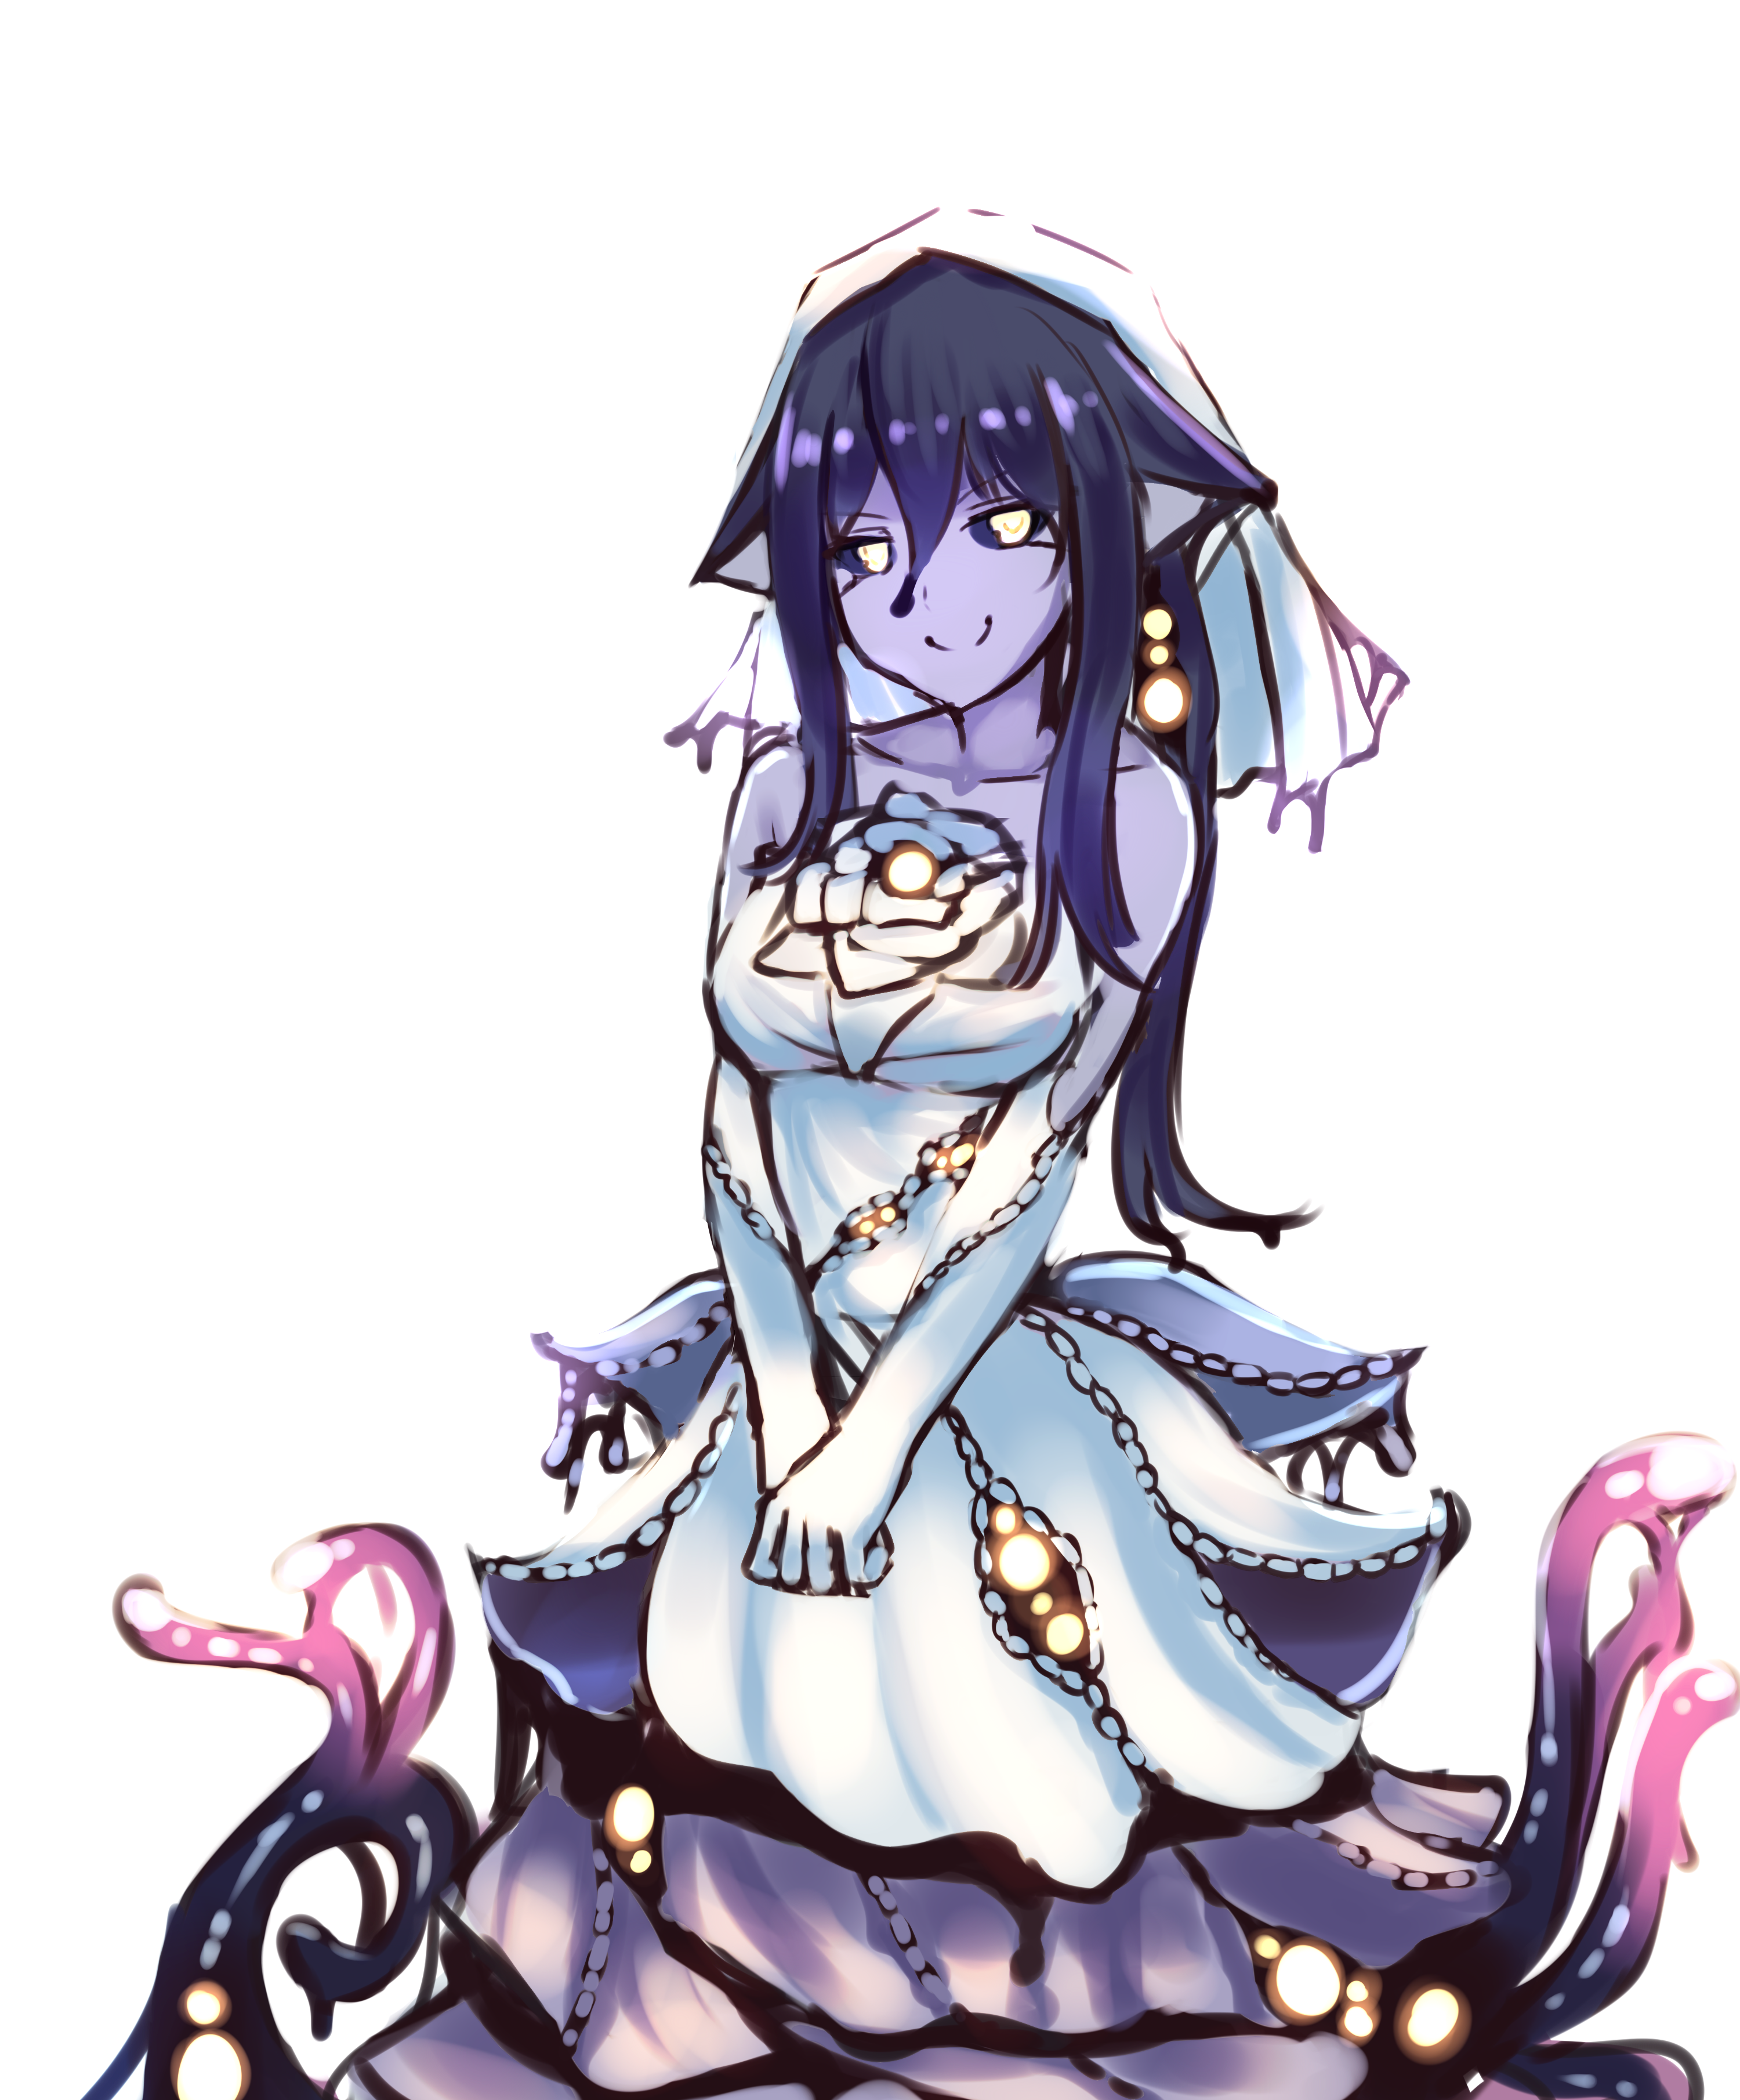 Dating sim where girl is eldritch abomination